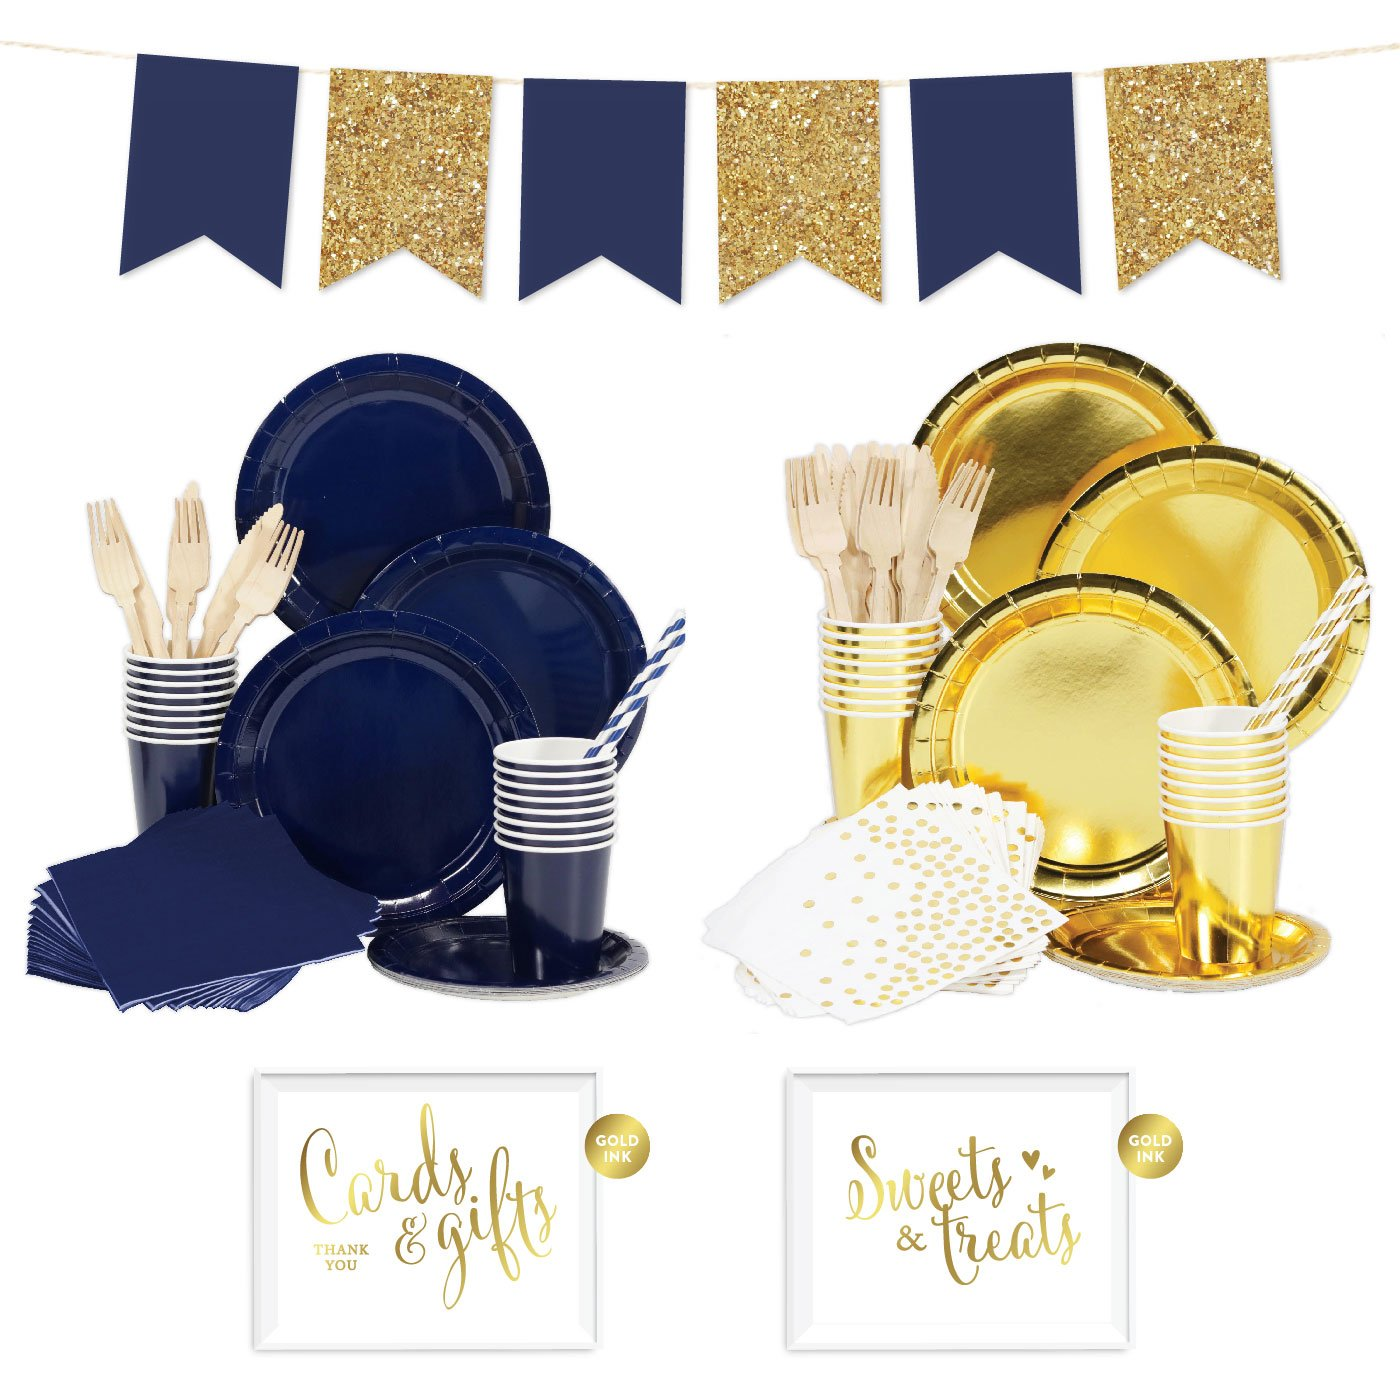 Andaz Press Complete 140-Piece Tableware Kit for 16 Guests, Navy Blue and Gold, Includes Plates, Cups, Napkins, Spoons, Forks, Straws, Party Signs, Hanging Pennant Banner Decorations, 1-Set